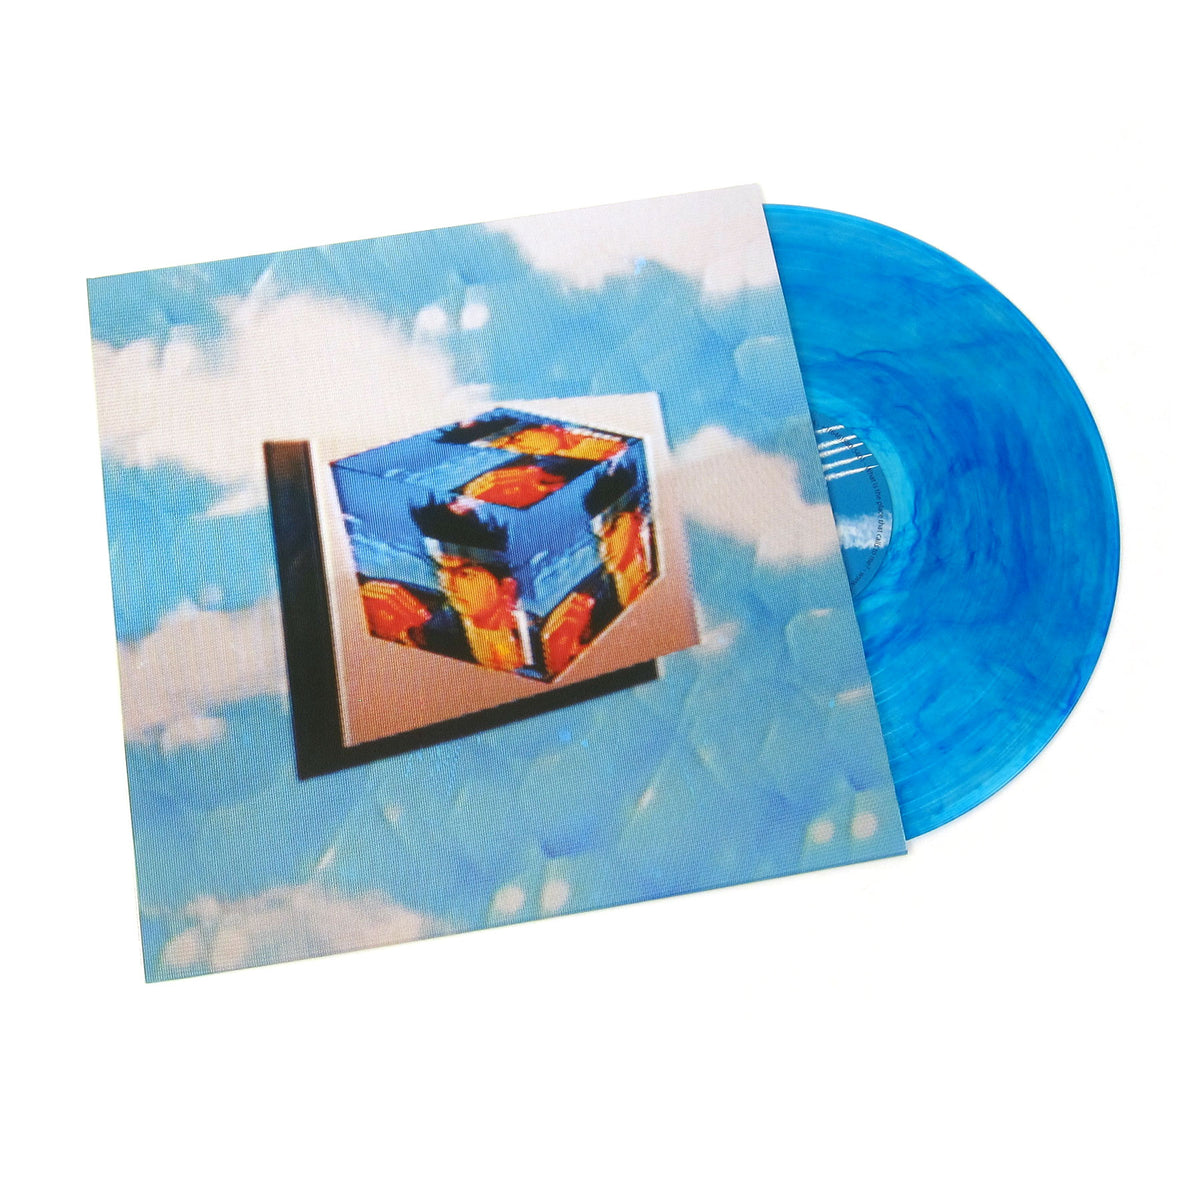 ESPRIT 空想: Virtua.zip (Colored Vinyl)